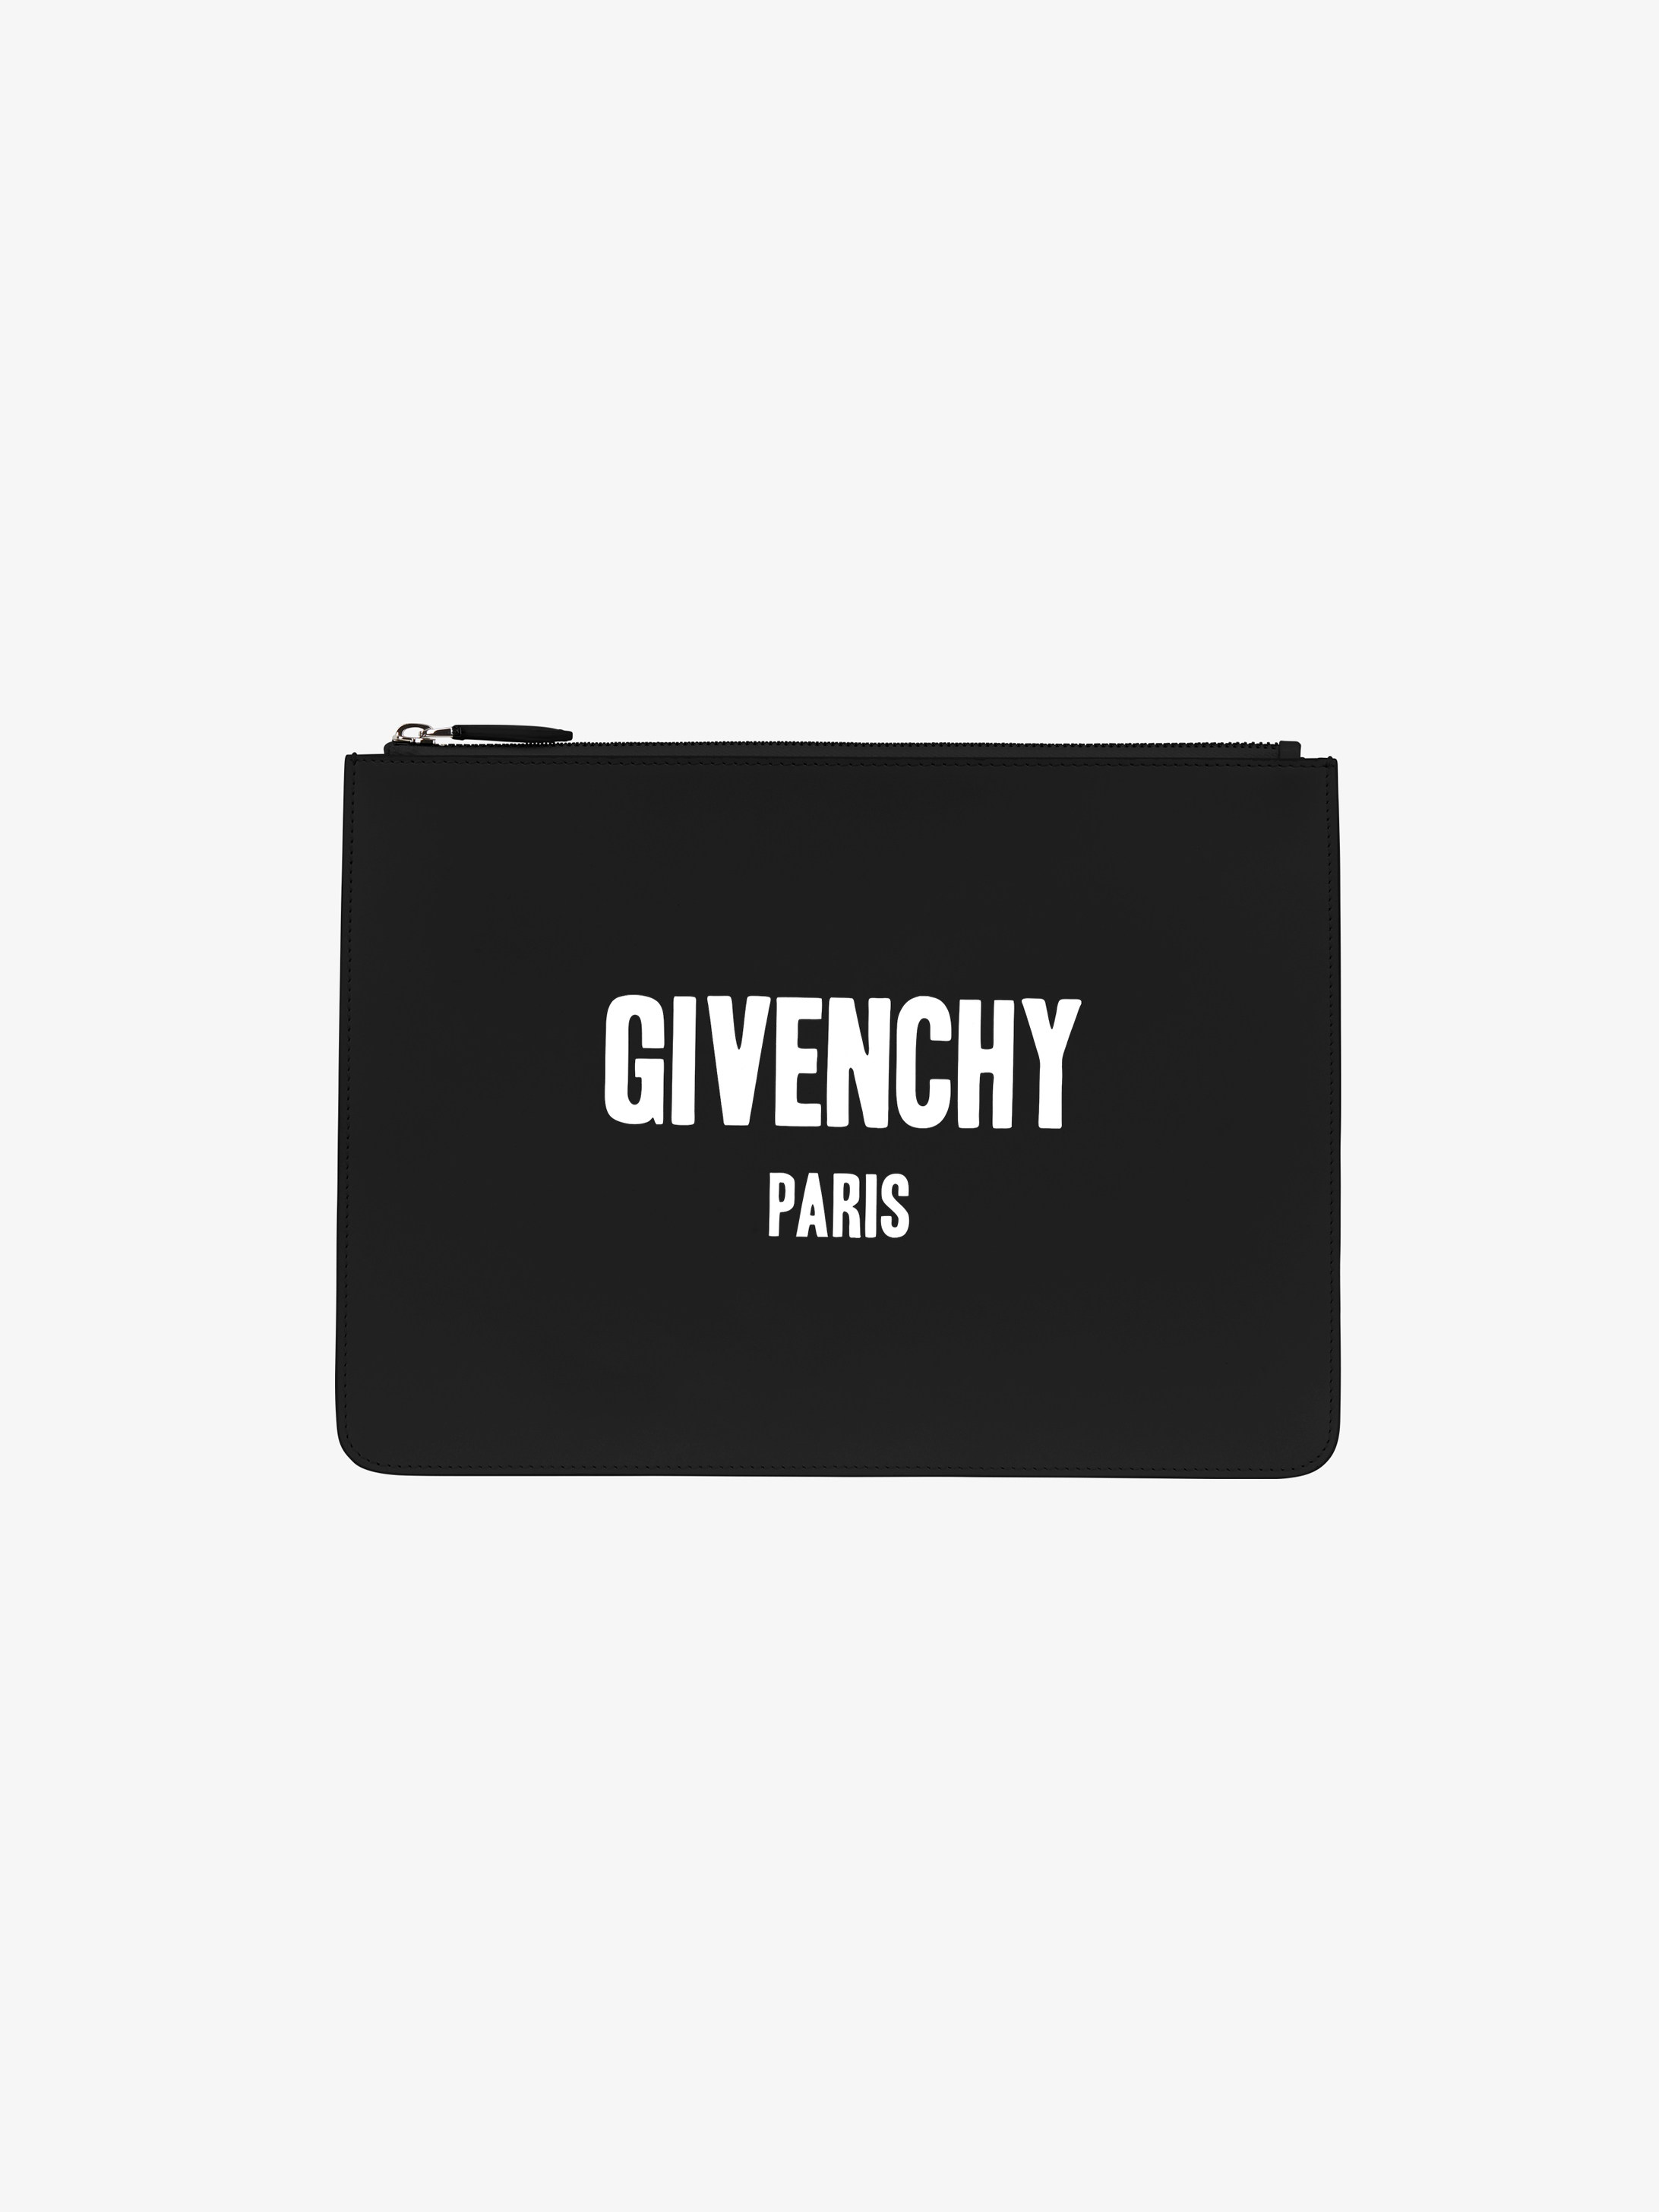 GIVENCHY PARIS printed pouch in leather